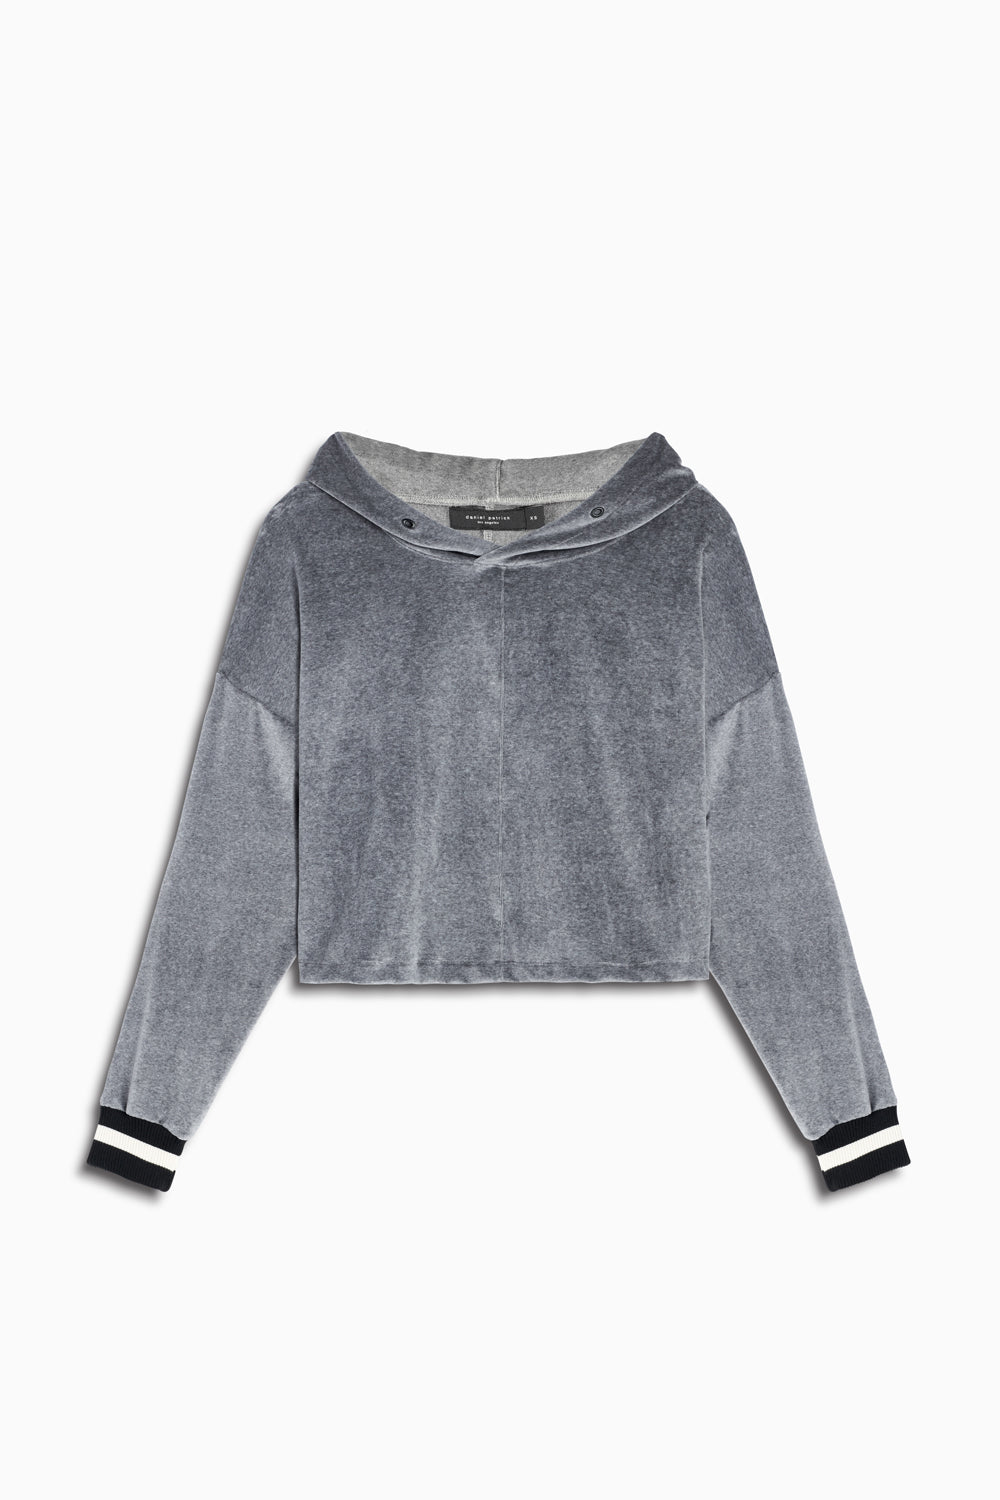 crop velour varsity hoodie in grey/black by daniel patrick